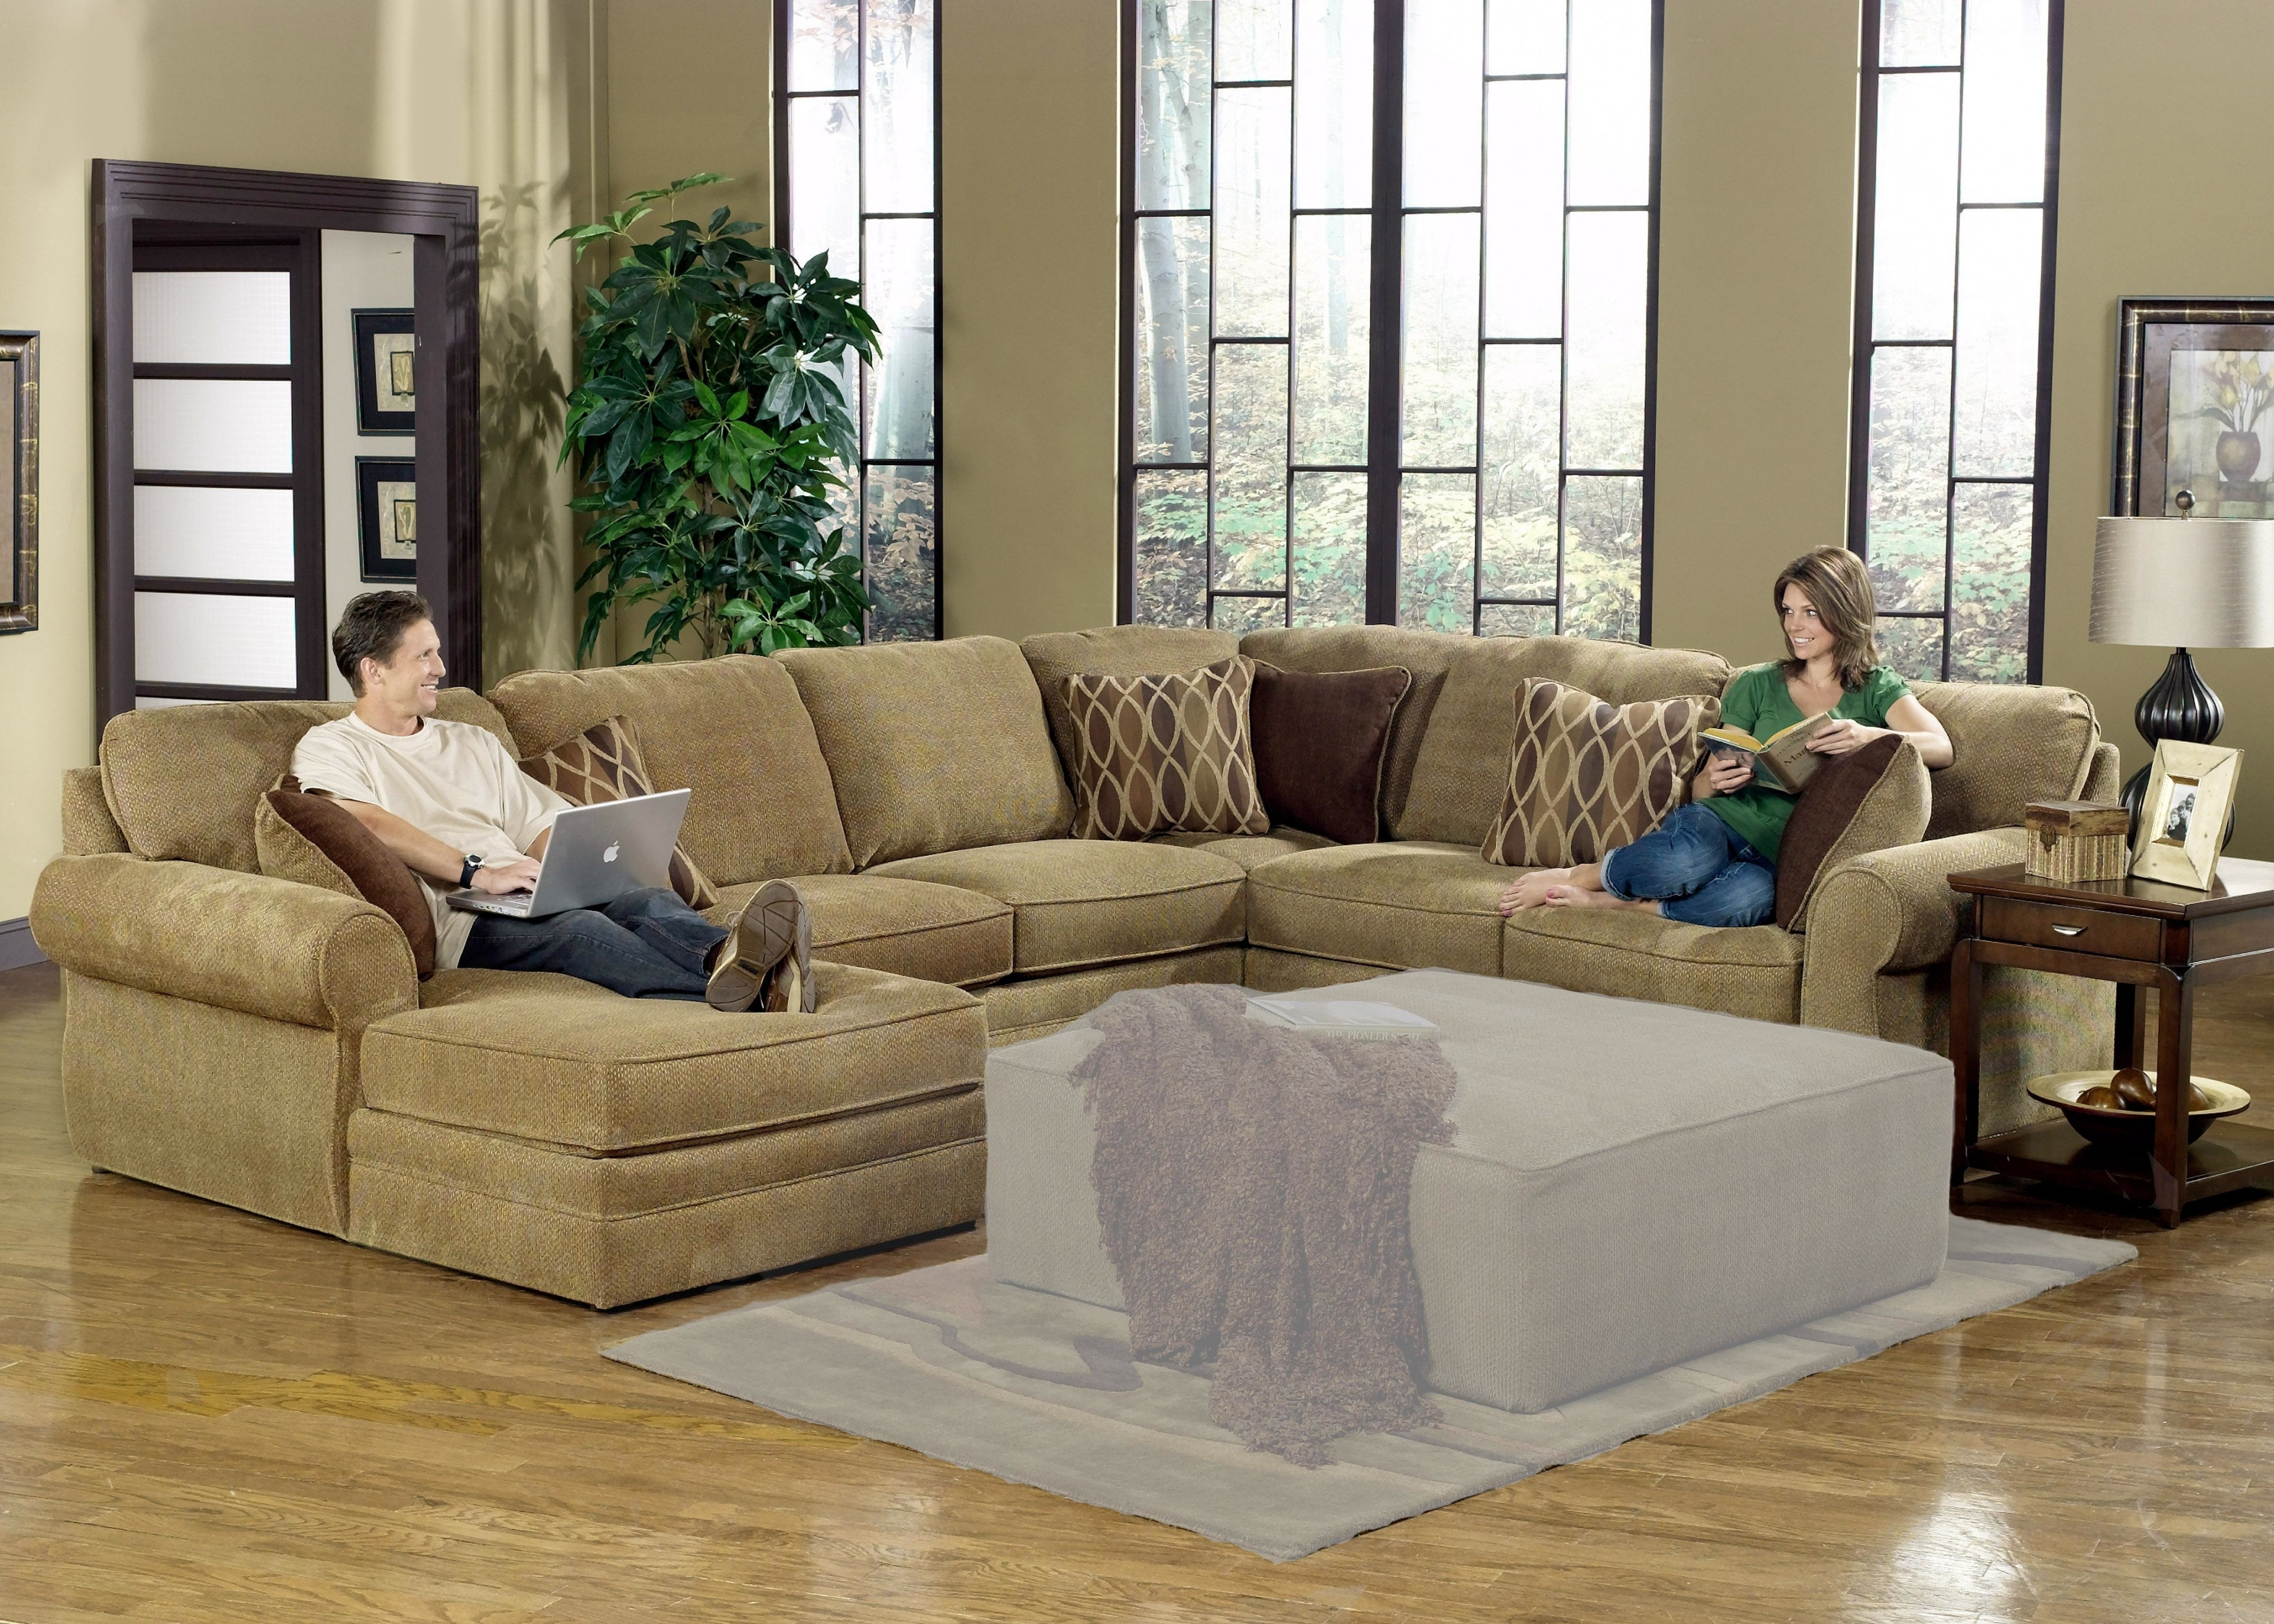 Cheap U Shaped Sectional Sofas – Tourdecarroll | House Decoration In U Shaped Sectional Sofas (View 5 of 10)